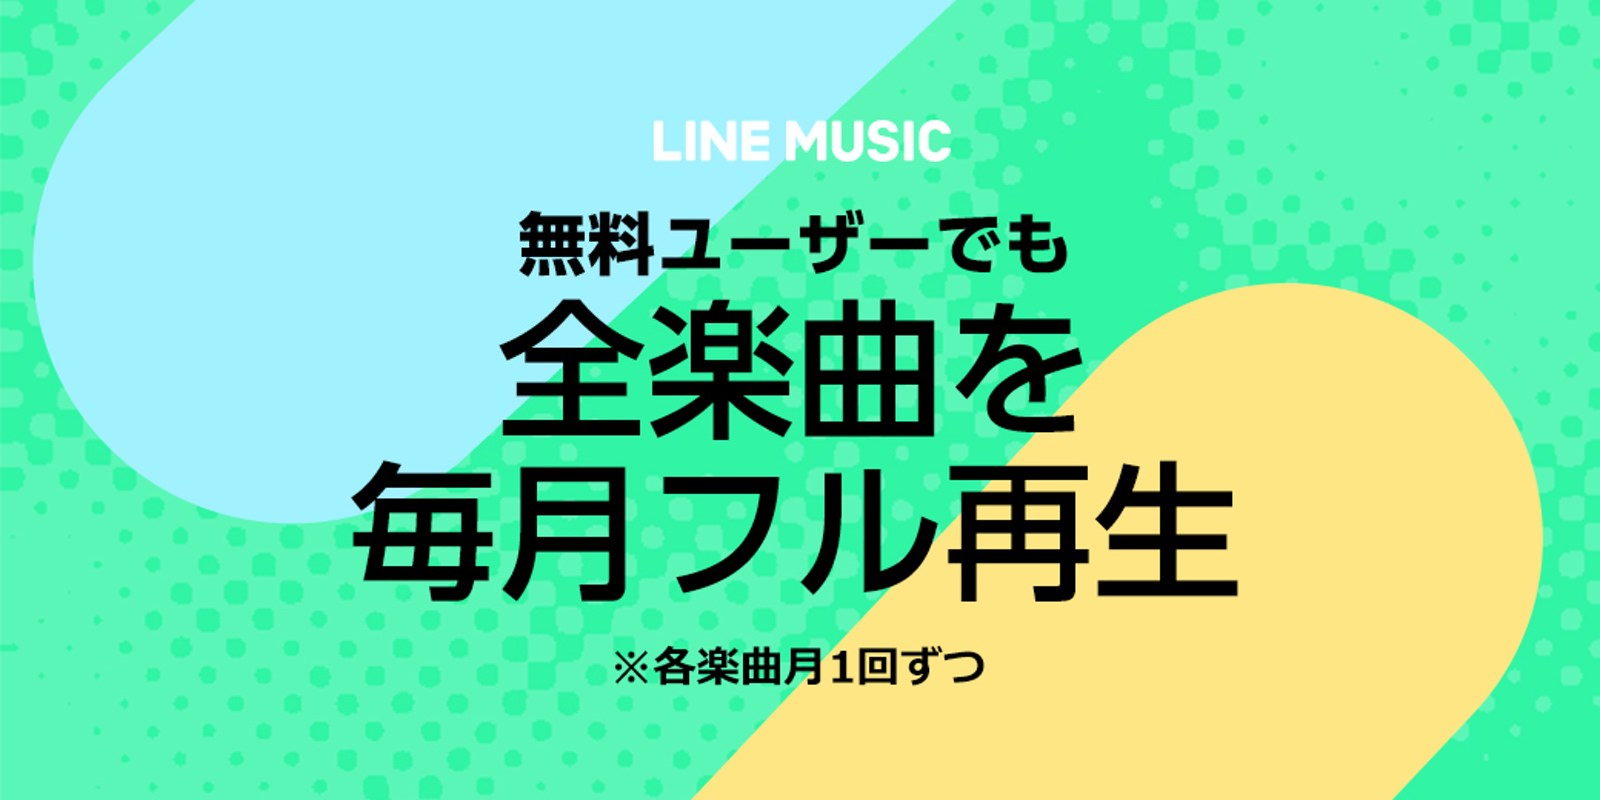 Line music new free program